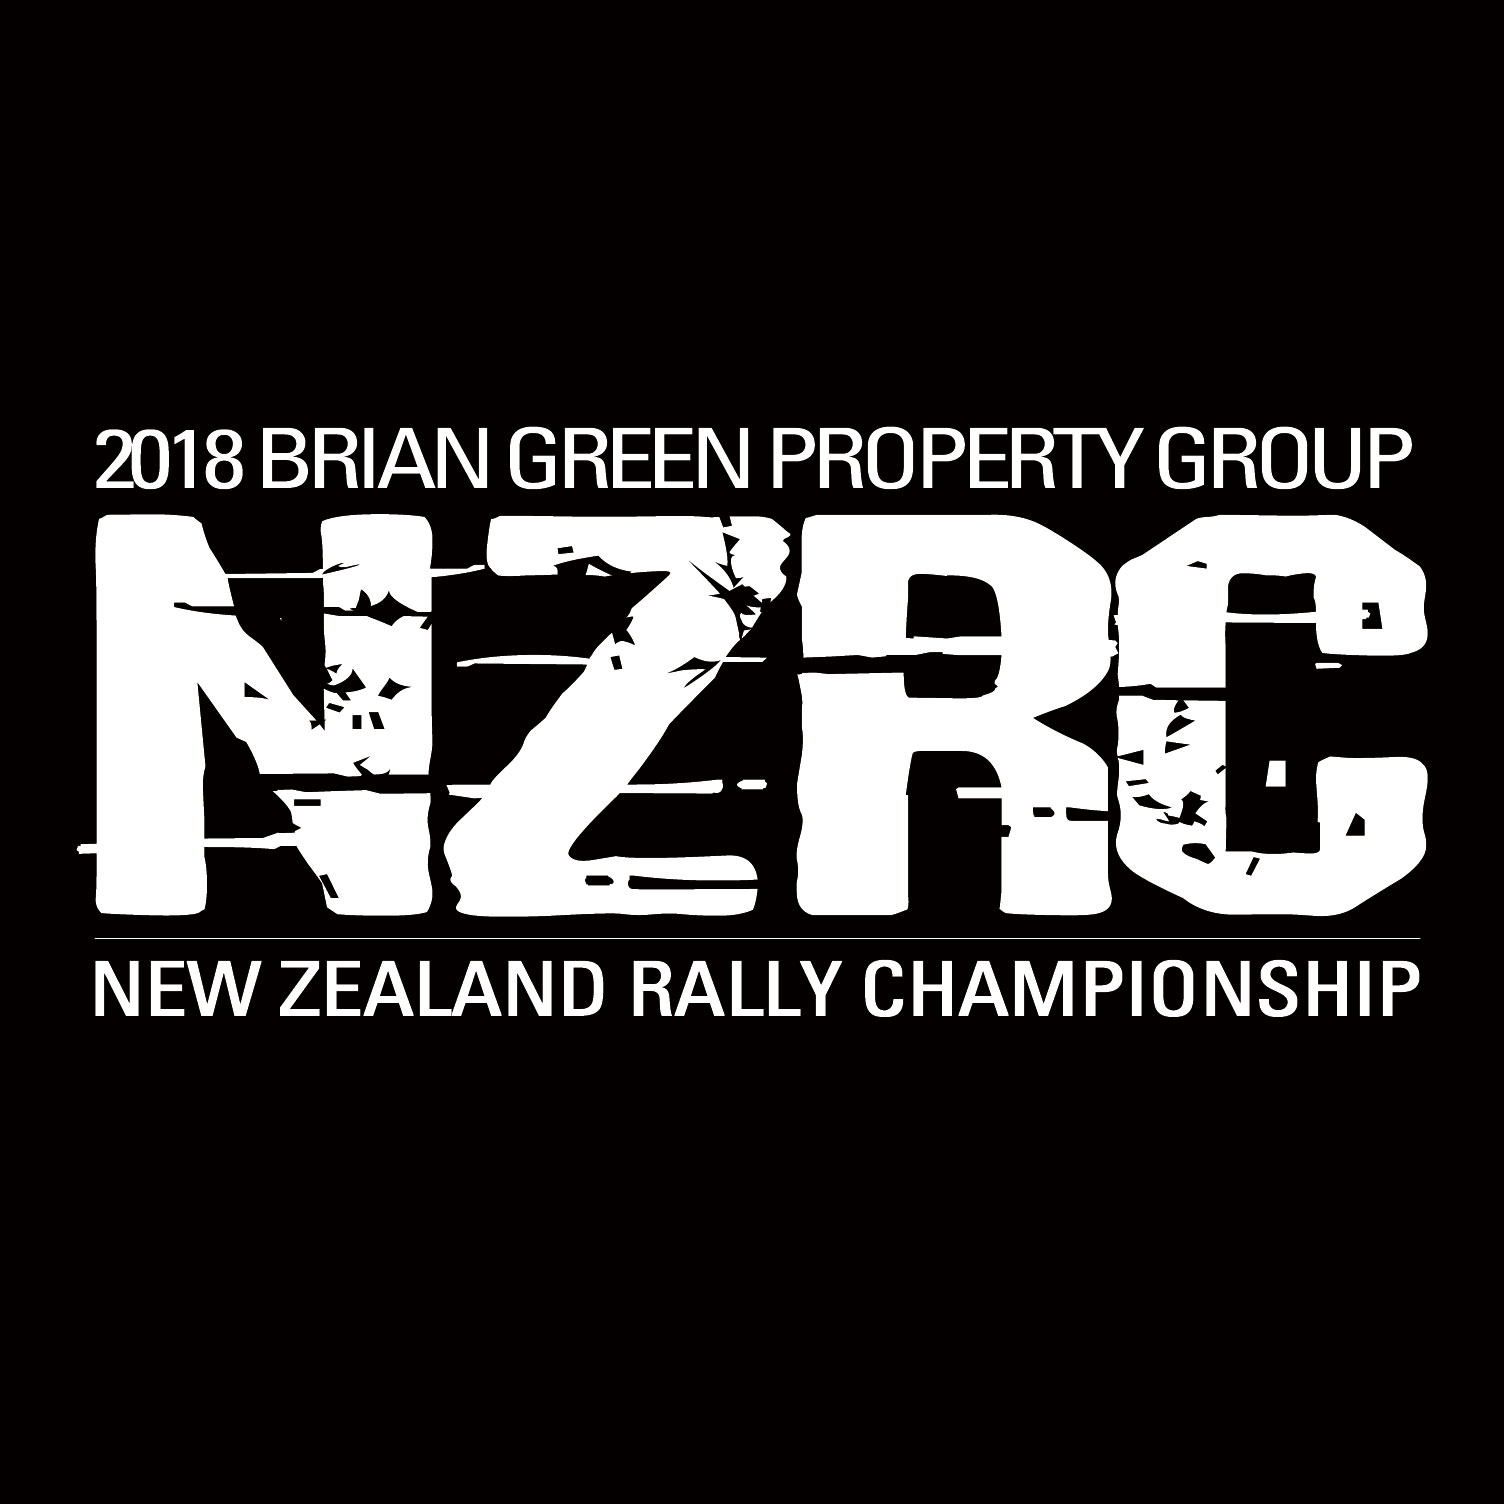 Five minutes with Lee Robson | :: Brian Green Property Group New Zealand Rally Championship ::